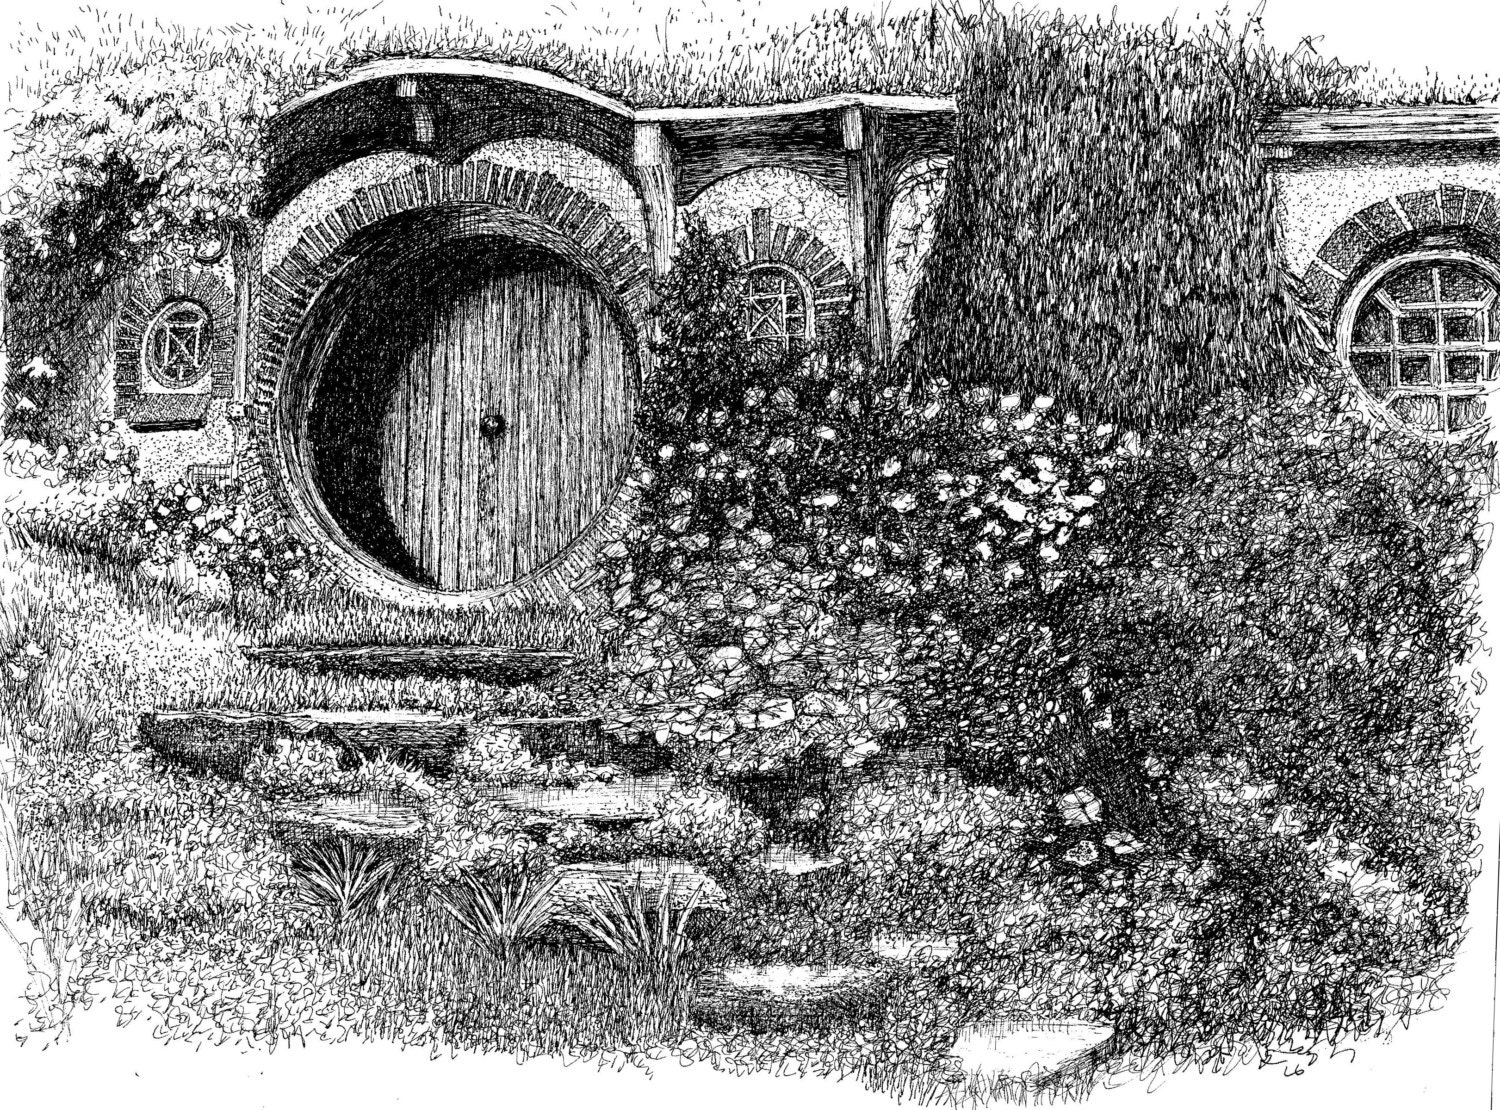 Bag End Pen And Ink Drawing An 8x10 Print By Skadoodled On Etsy